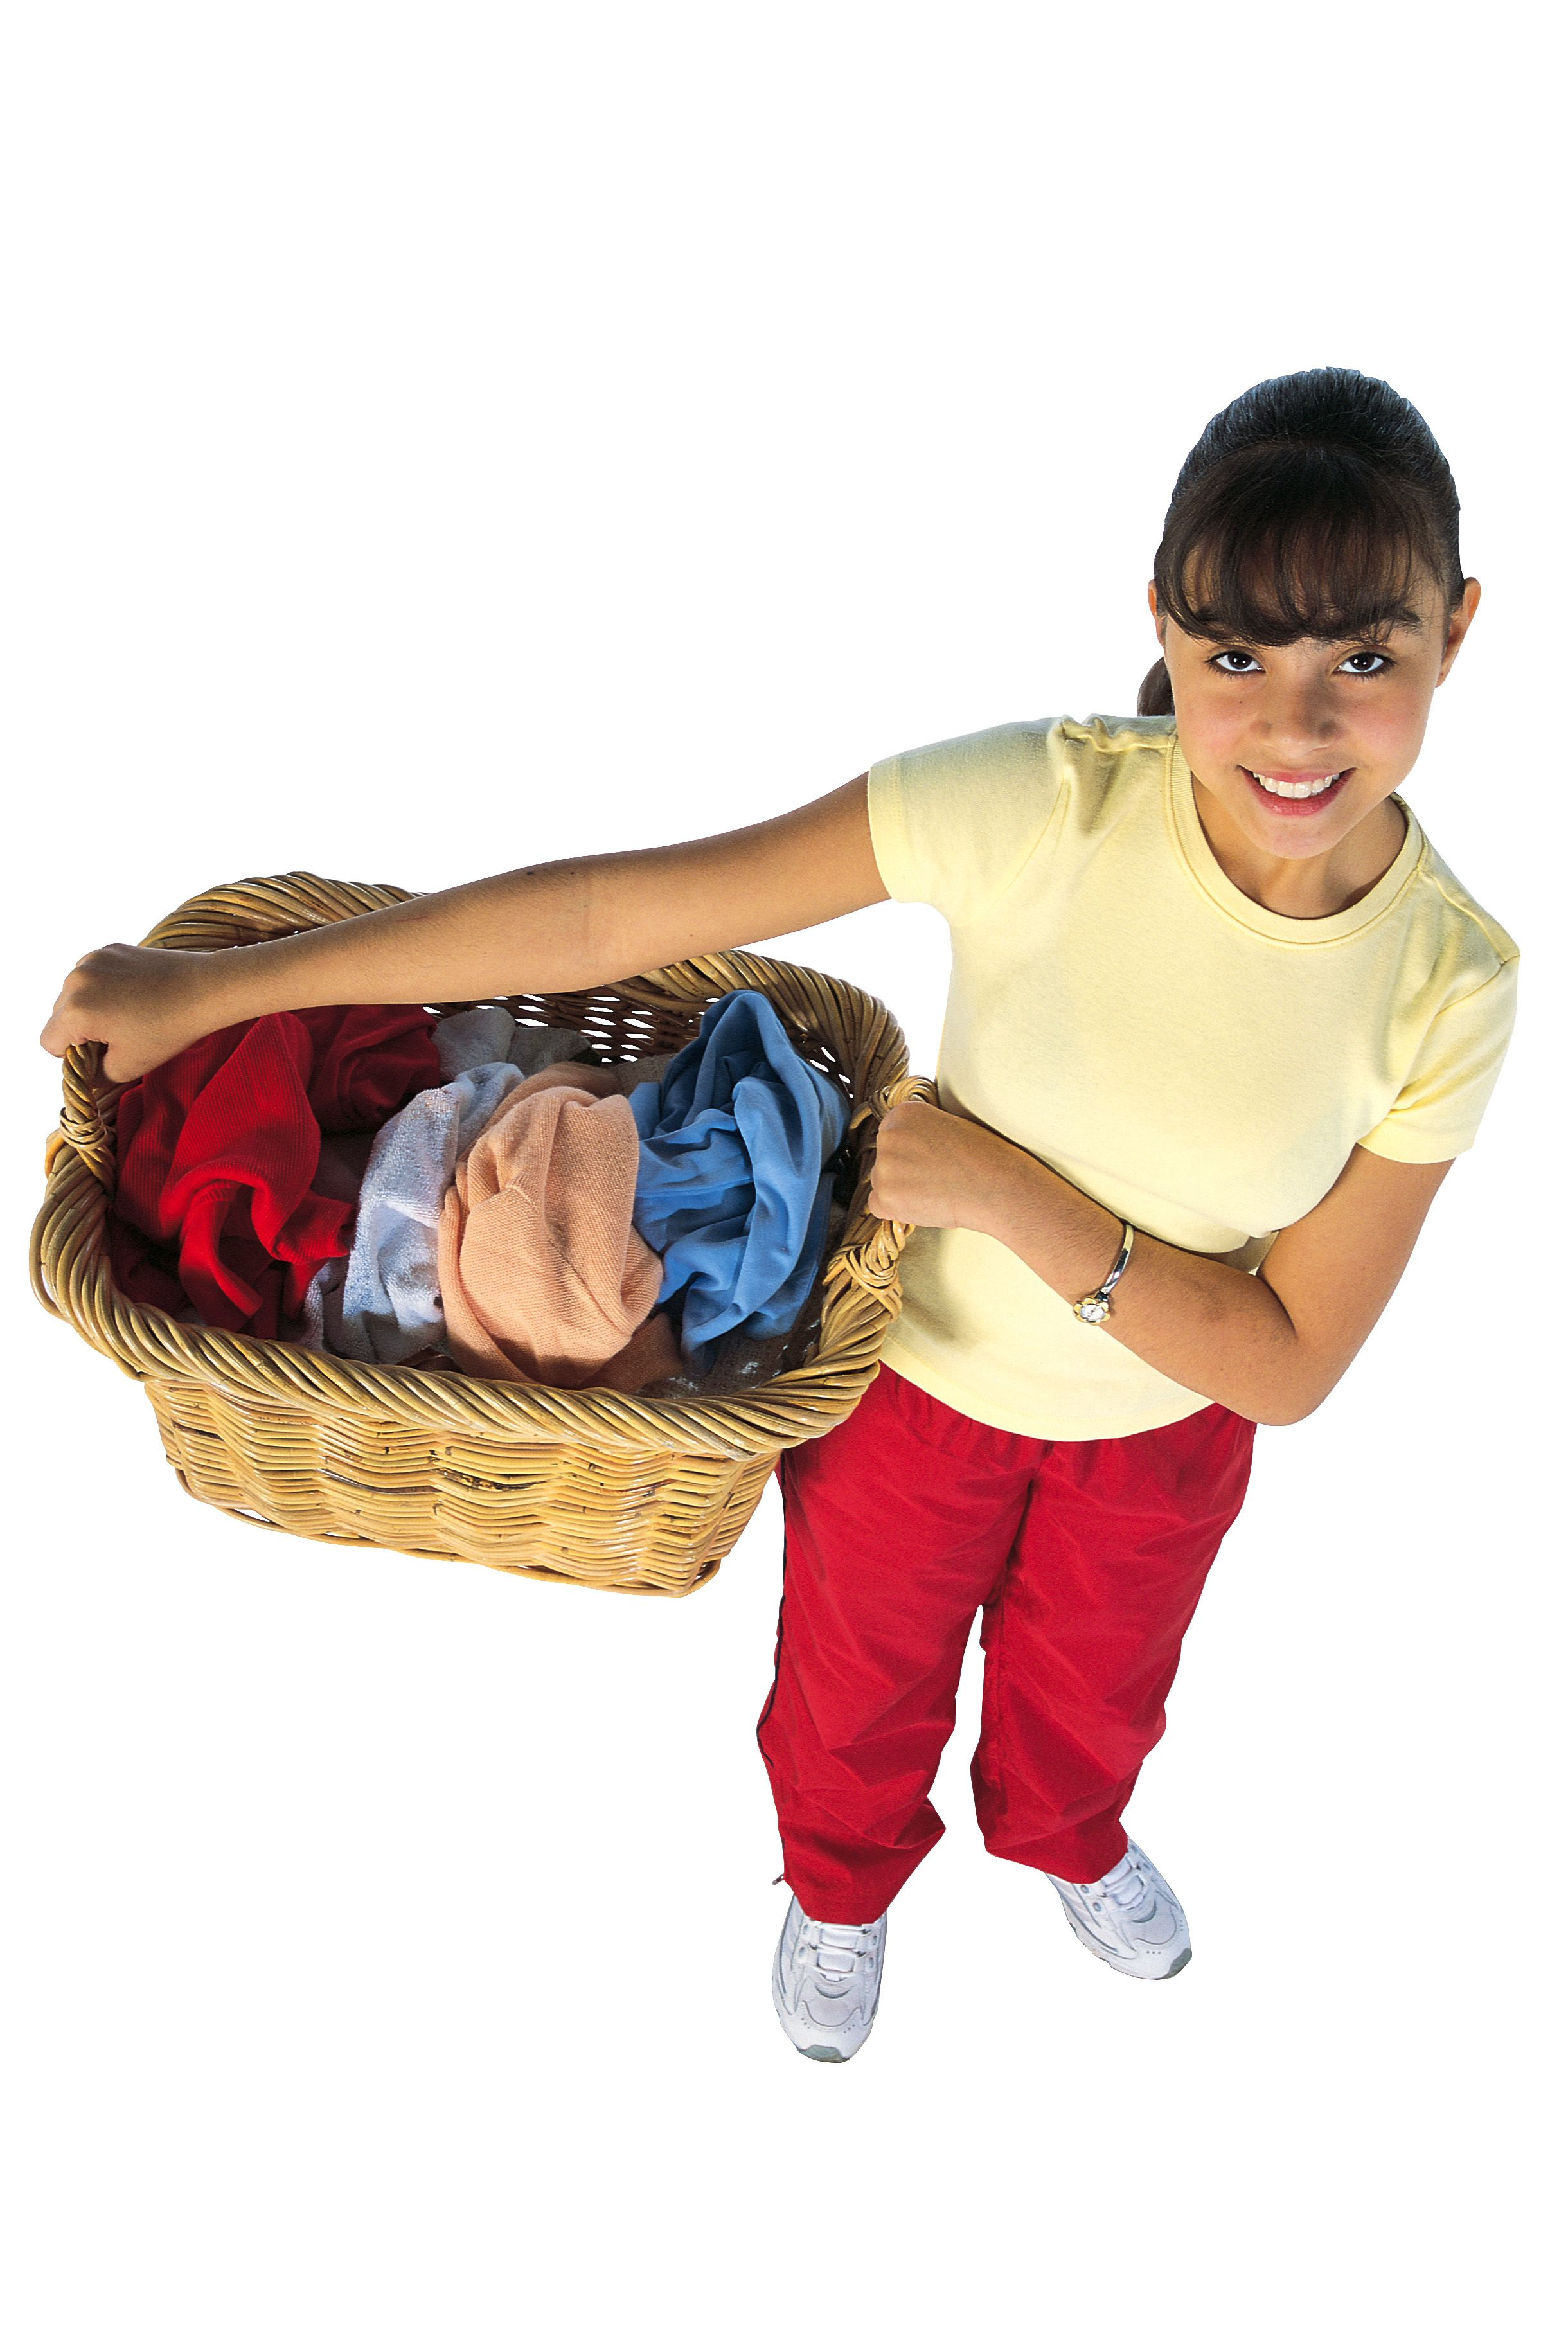 Should Teenagers Be Paid To Do Chores Amp Get Good Grades